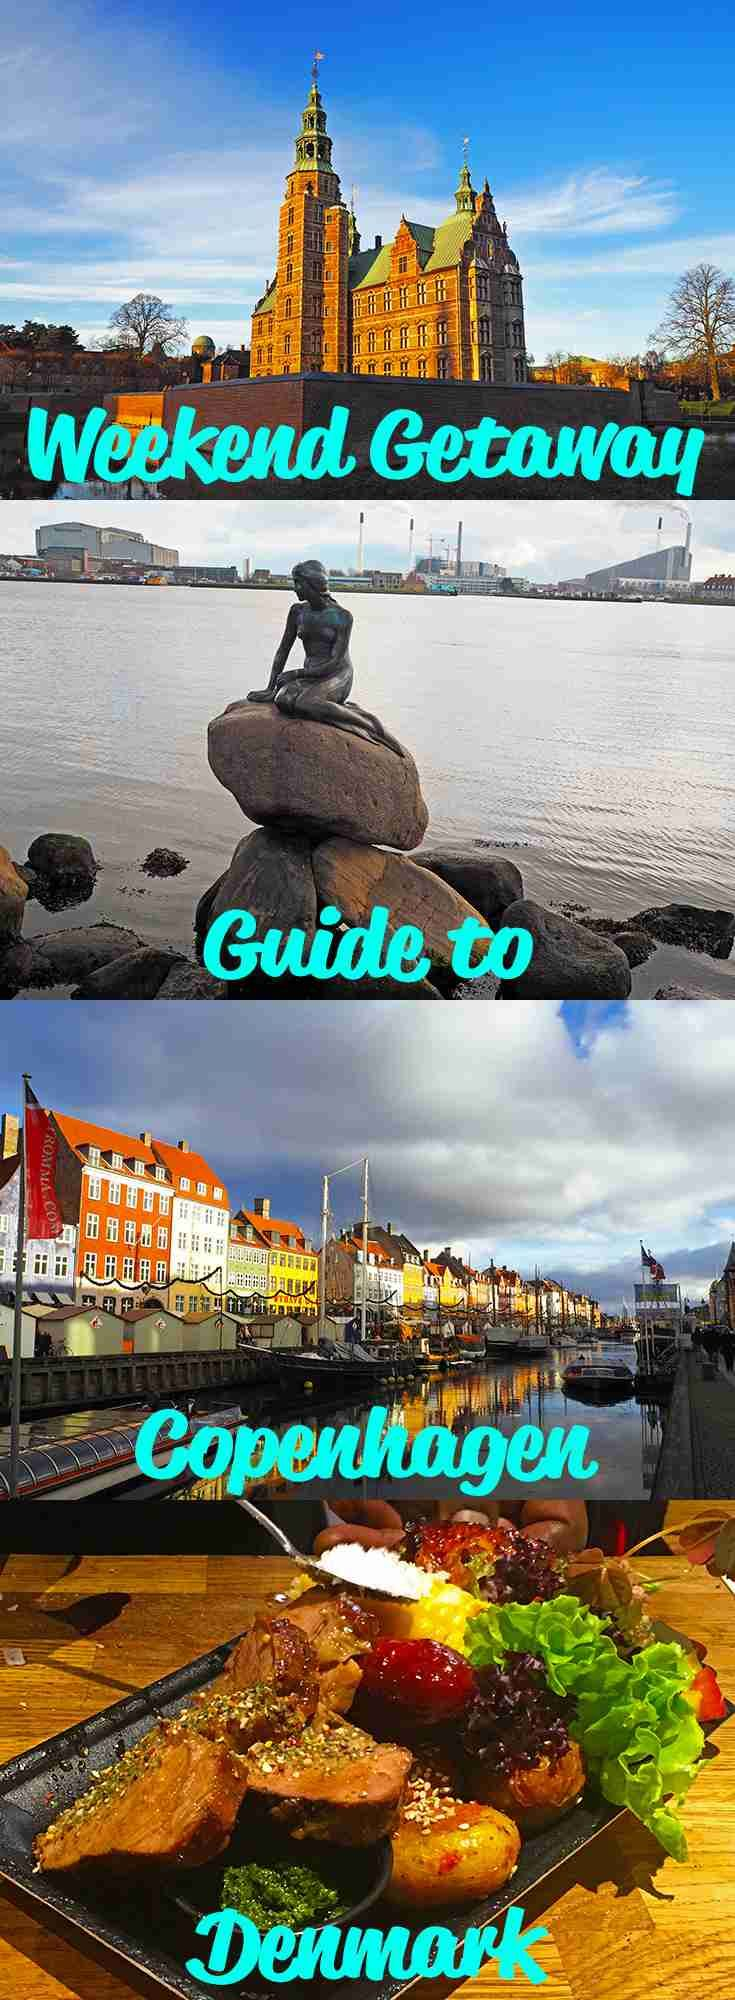 A long weekend getaway guide to Copenhagen – WhodoIdo: Explore the hip and cool city of Copenhagen. Only a short flight from Europe, making Copenhagen perfect for a long weekend break. Explore the city by bike, visit the castles, ride the thrilling rides in Tivoli Gardens and sample the divine food Copenhagen has to offer.